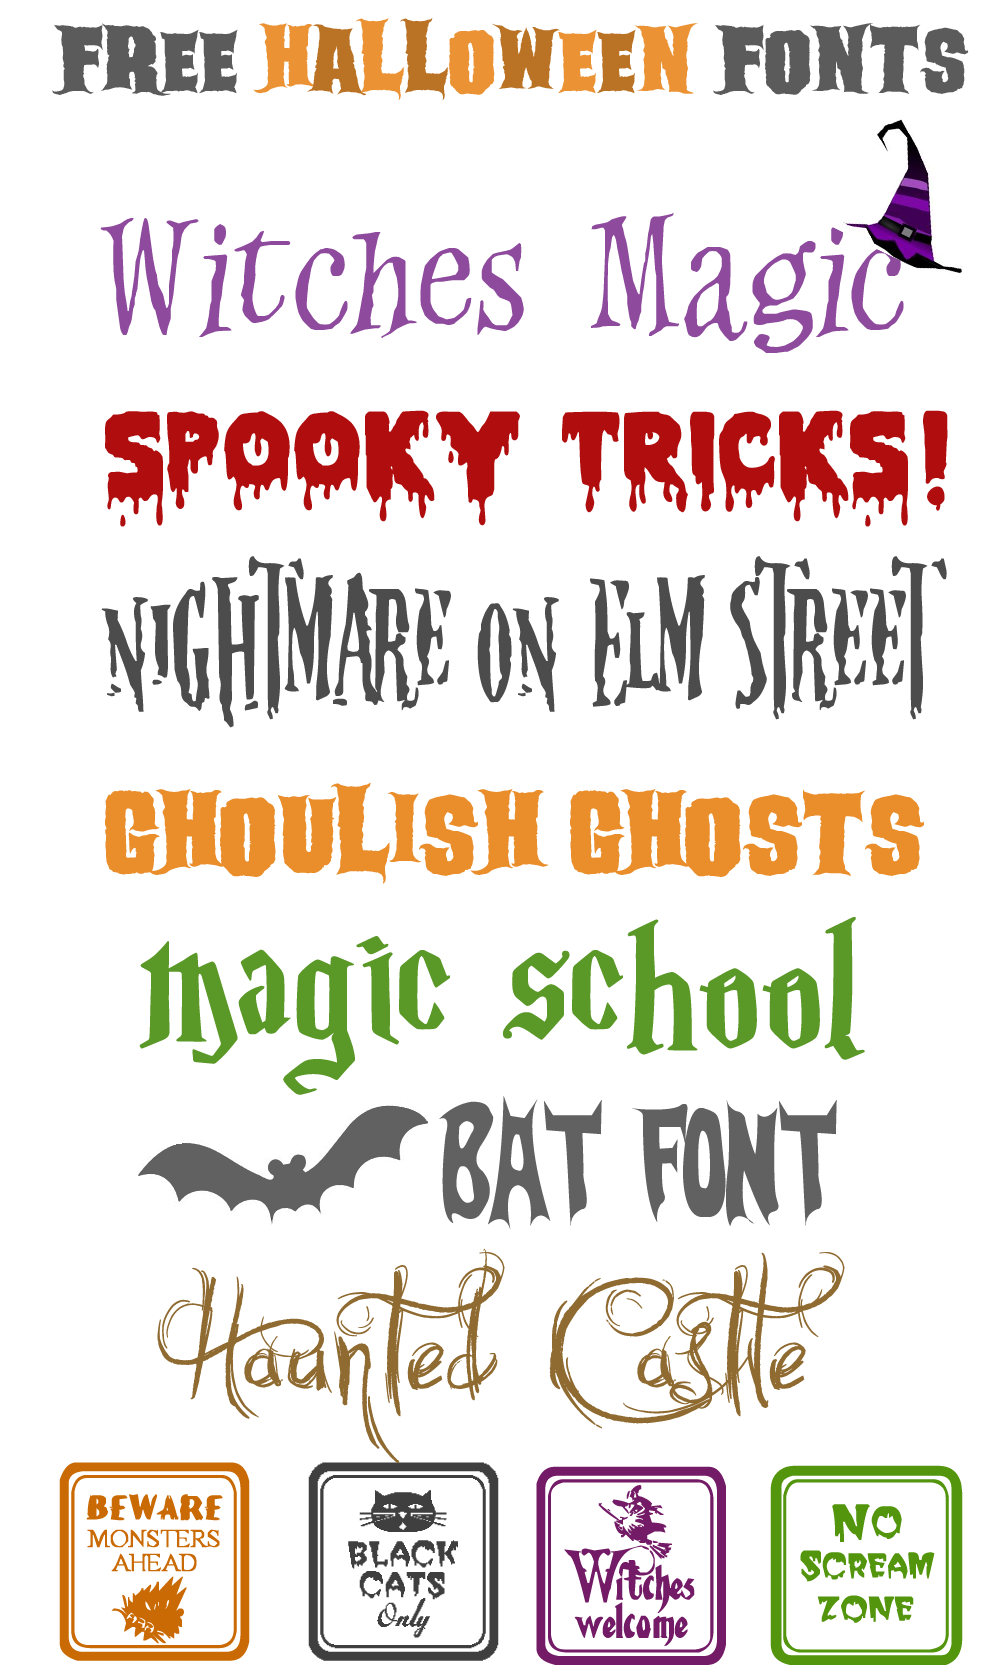 free halloween fonts | font | pinterest | ハロウィンの飾り付け